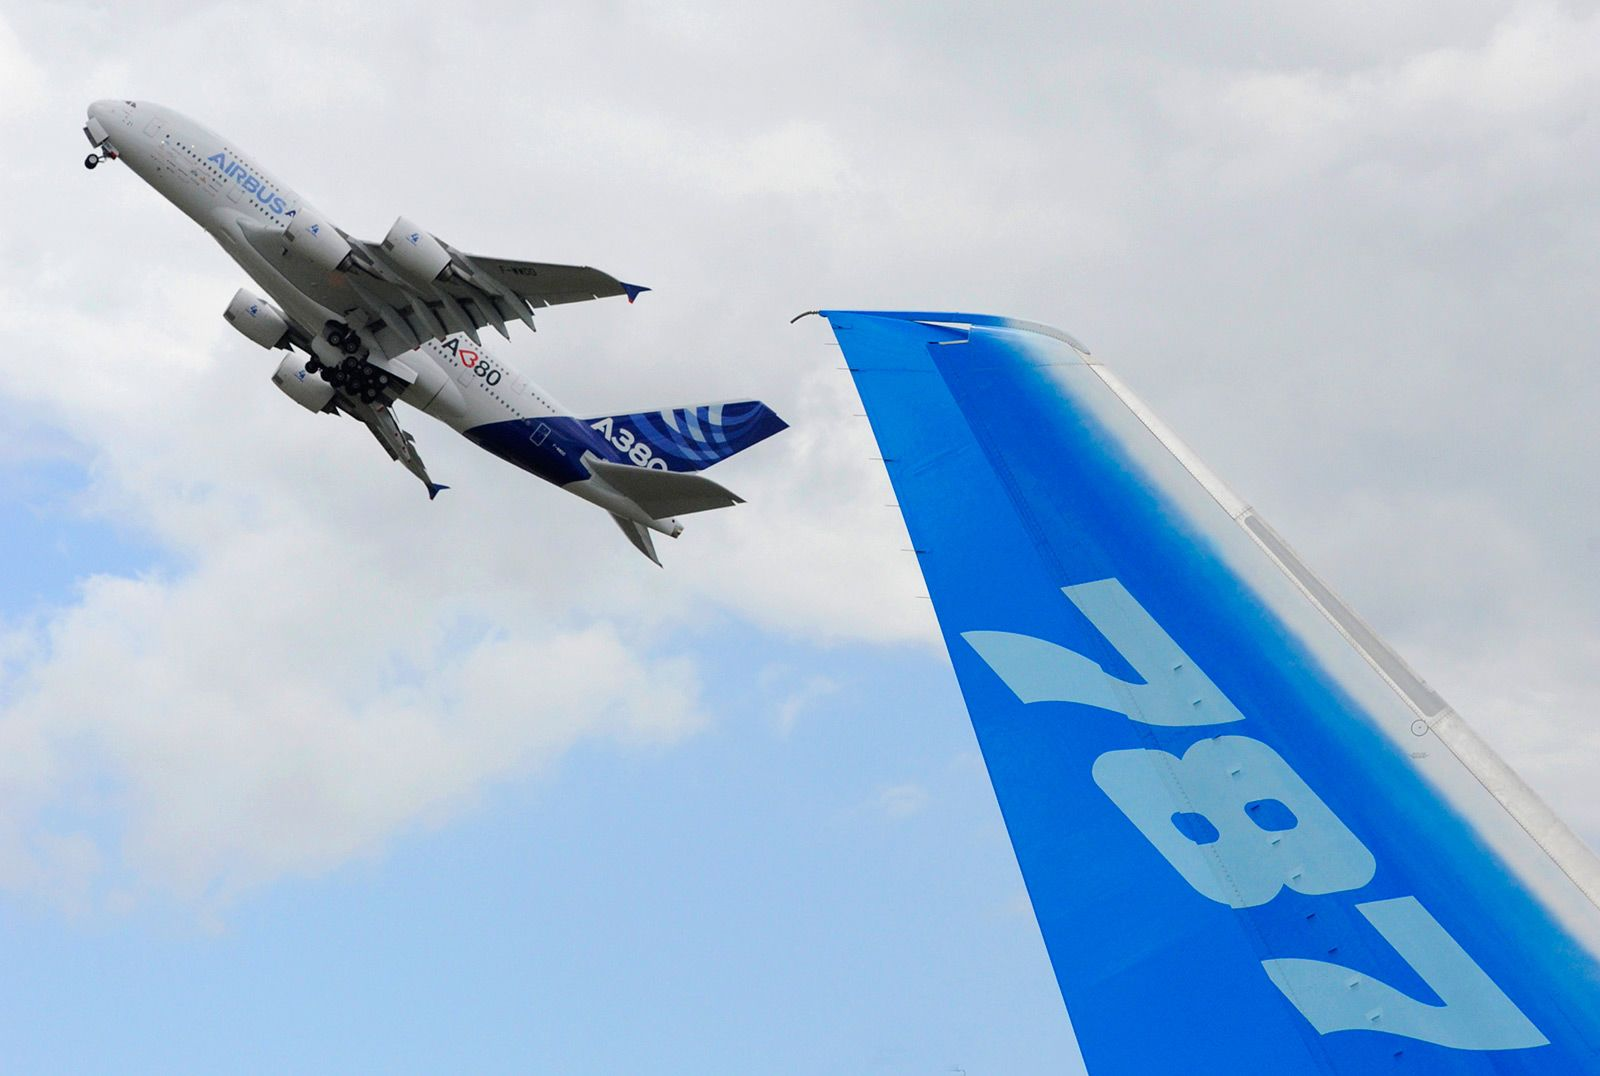 Paris Air Show offers Boeing and Airbus opportunity to kick-start 2019